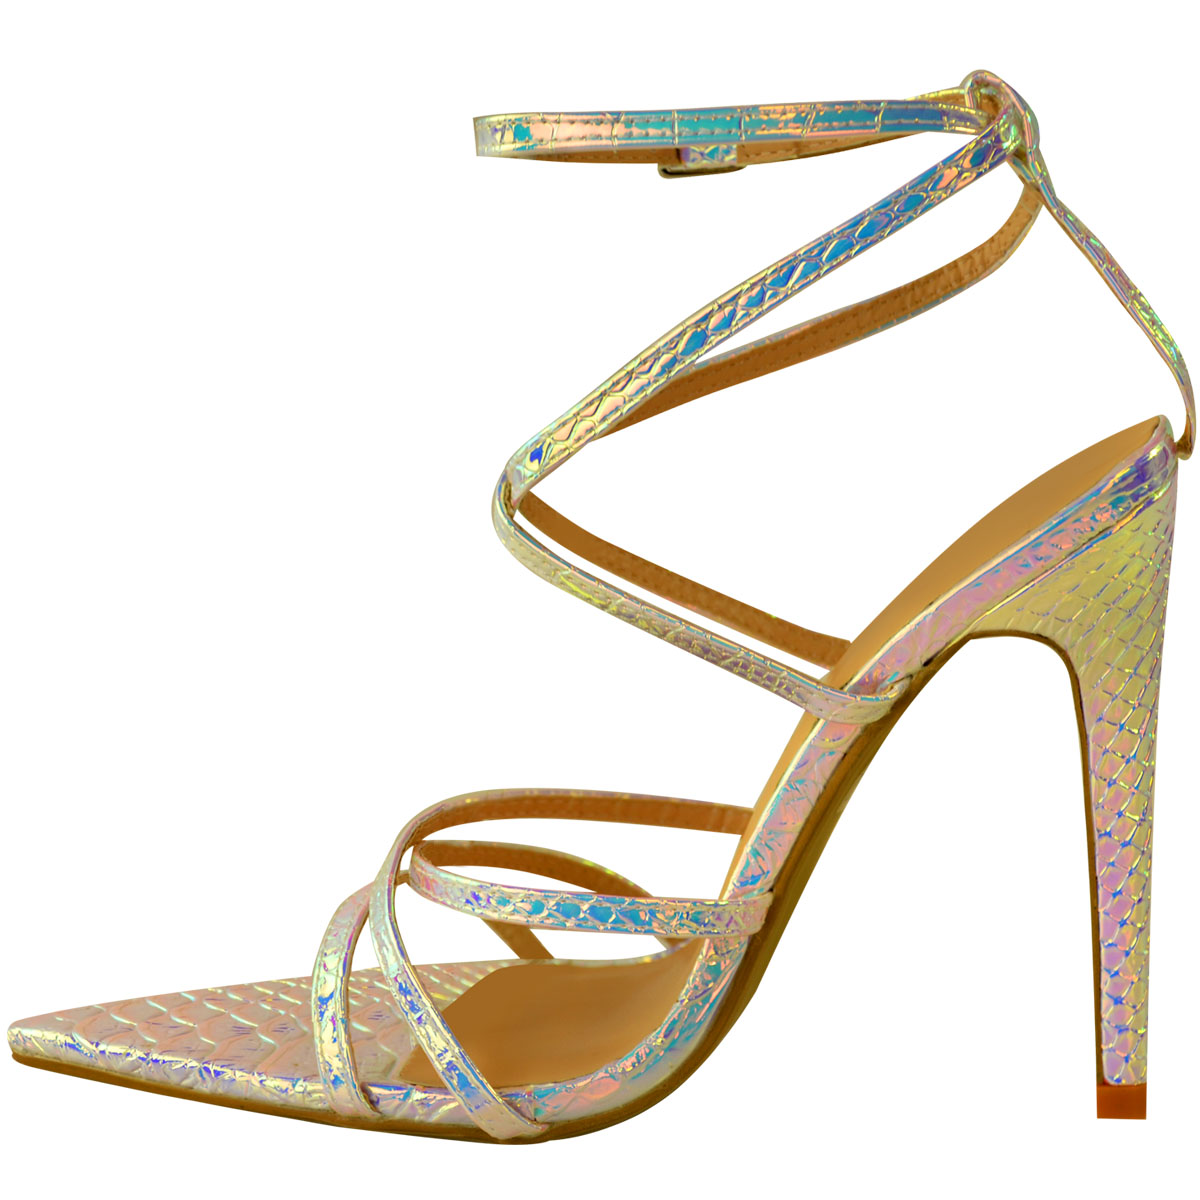 Womens-Silver-Hologram-Perspex-High-Heel-Party-Sandals-Barely-There-Strappy thumbnail 4